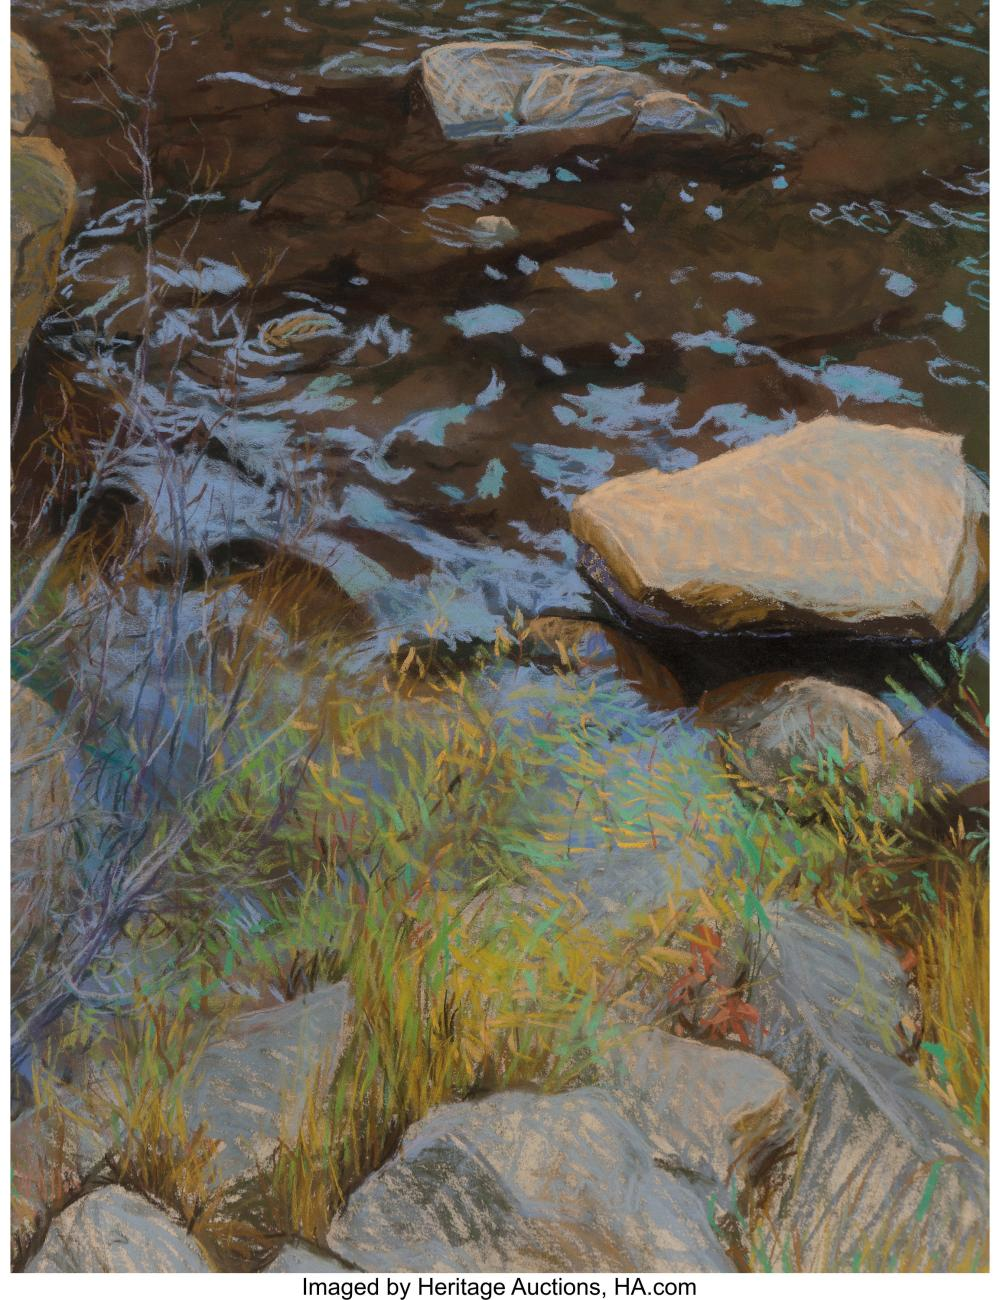 Kitty Wallis (American, b. 1938) Yuba River, 1984 Pastel on paper 26-1/4 x 20-1/